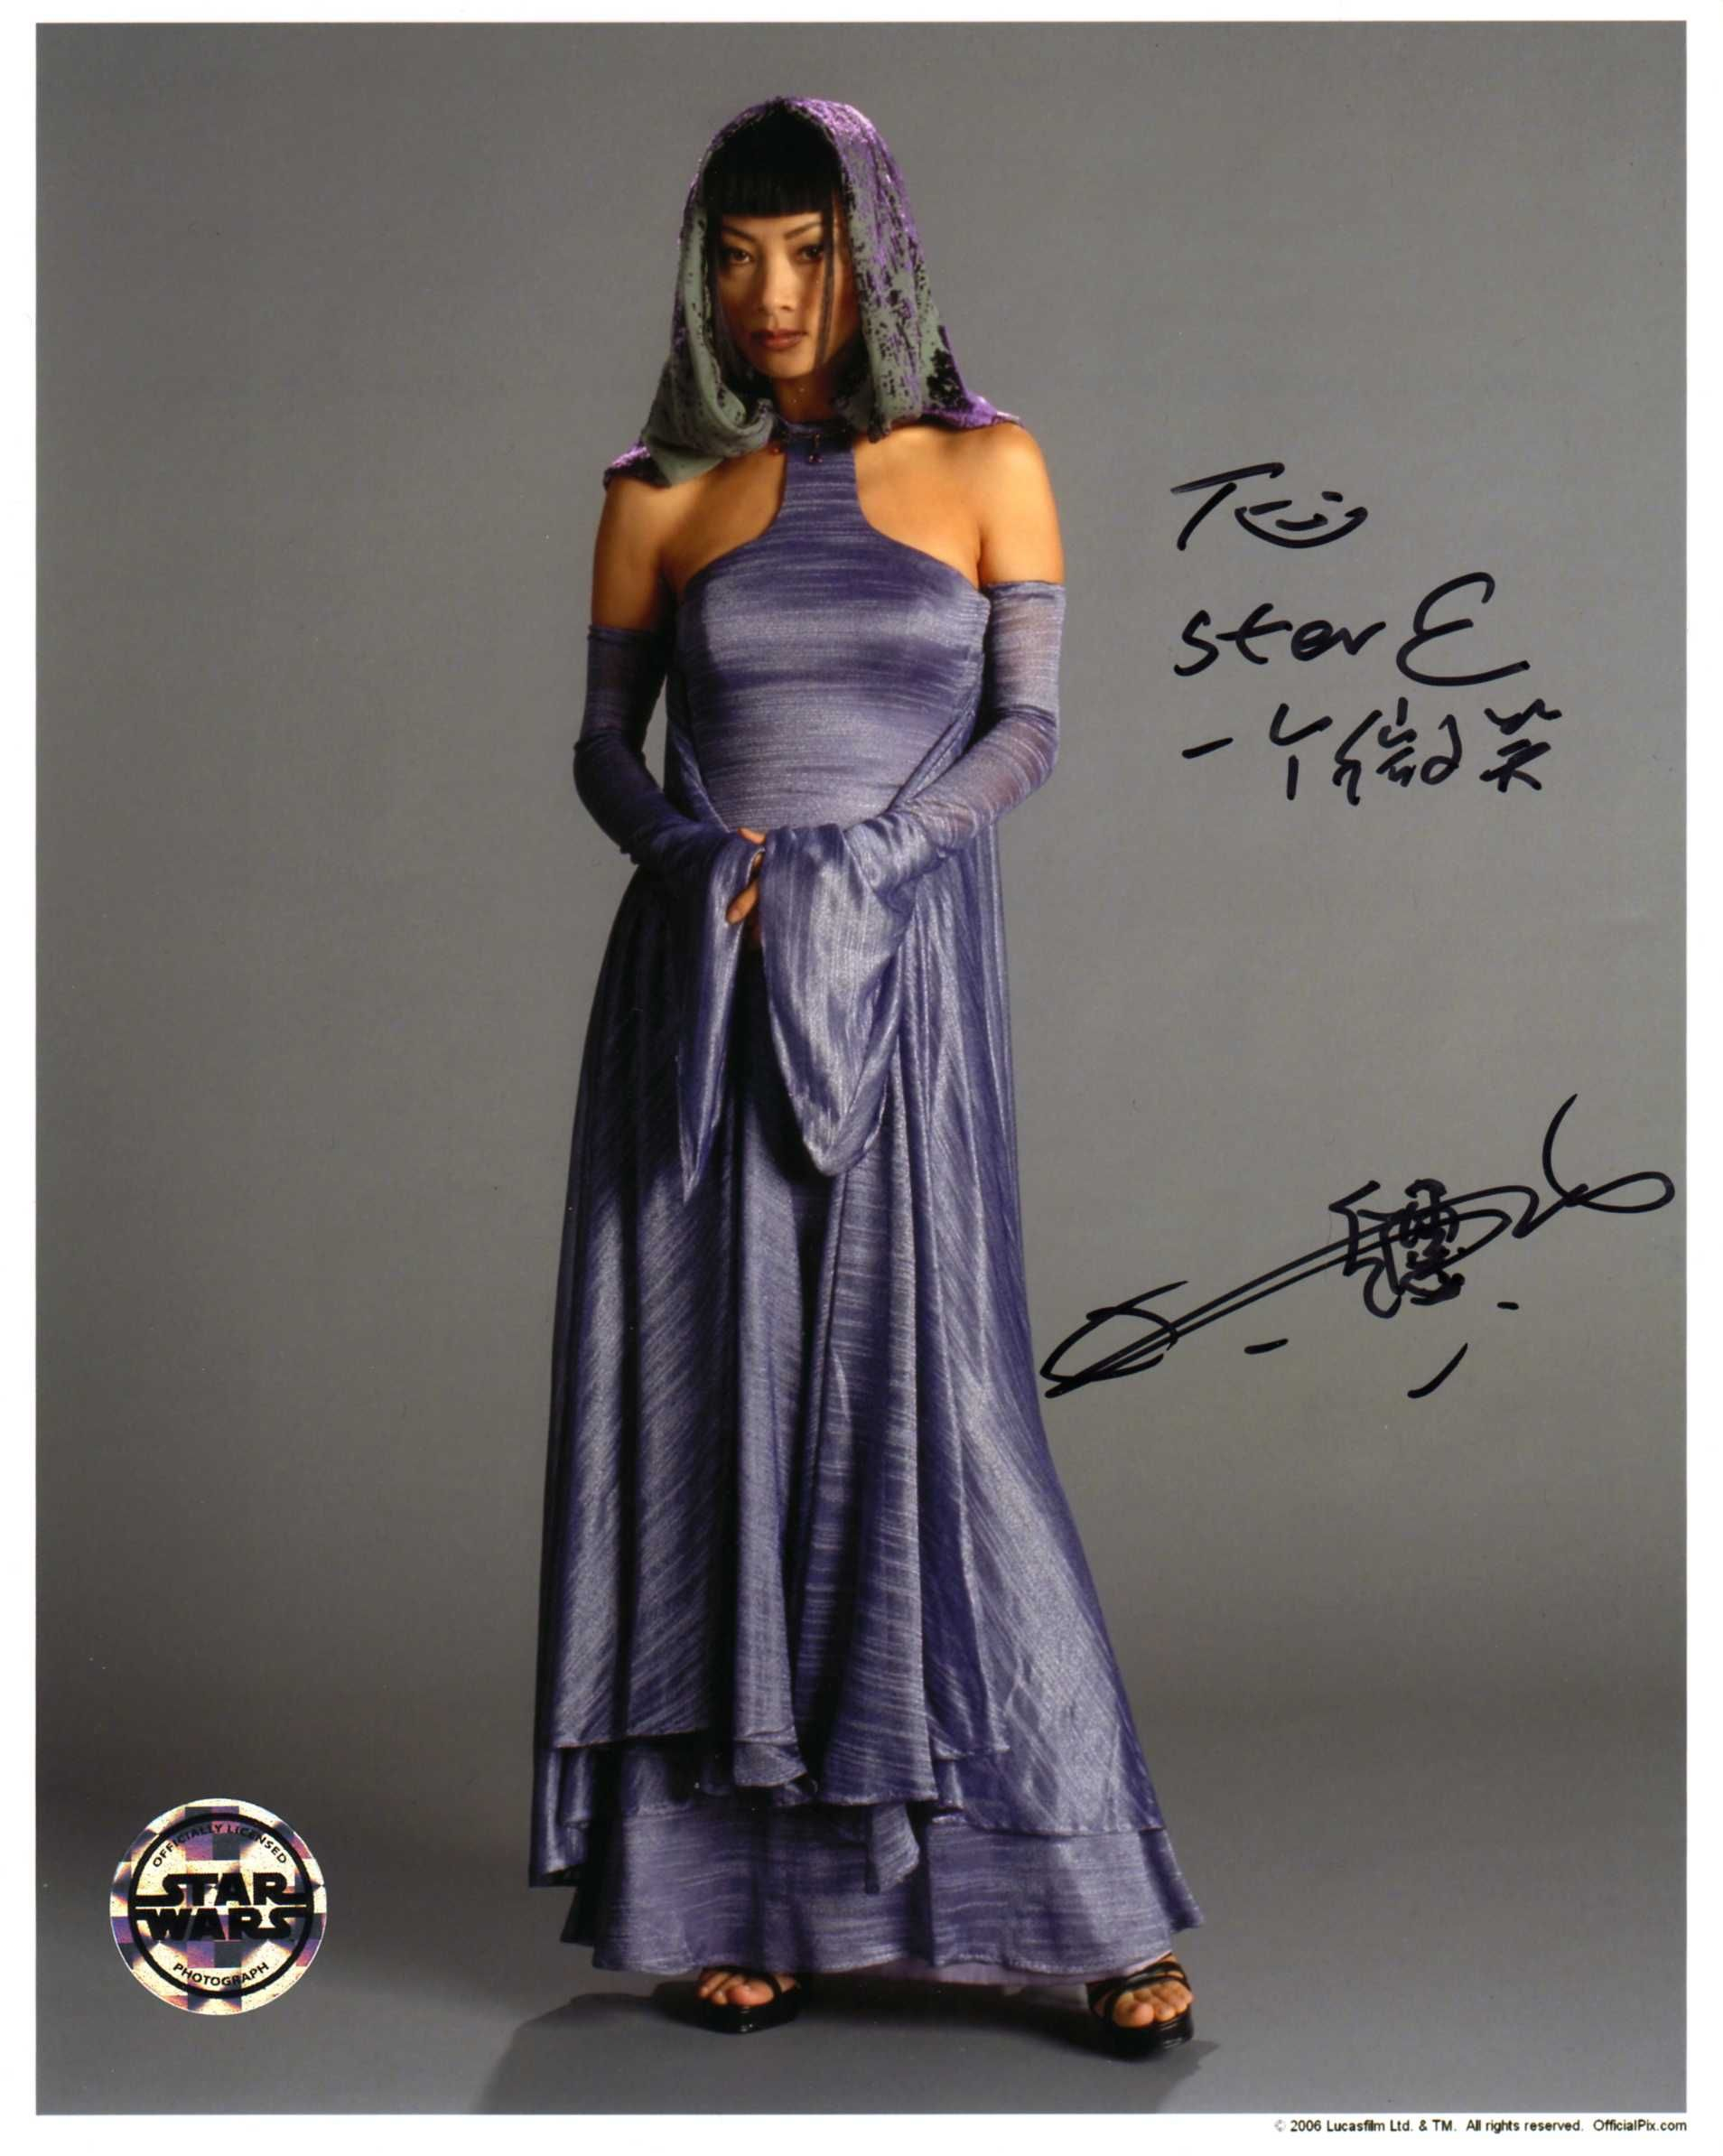 Bai ling episode iiisigned at chiller threatre 43011